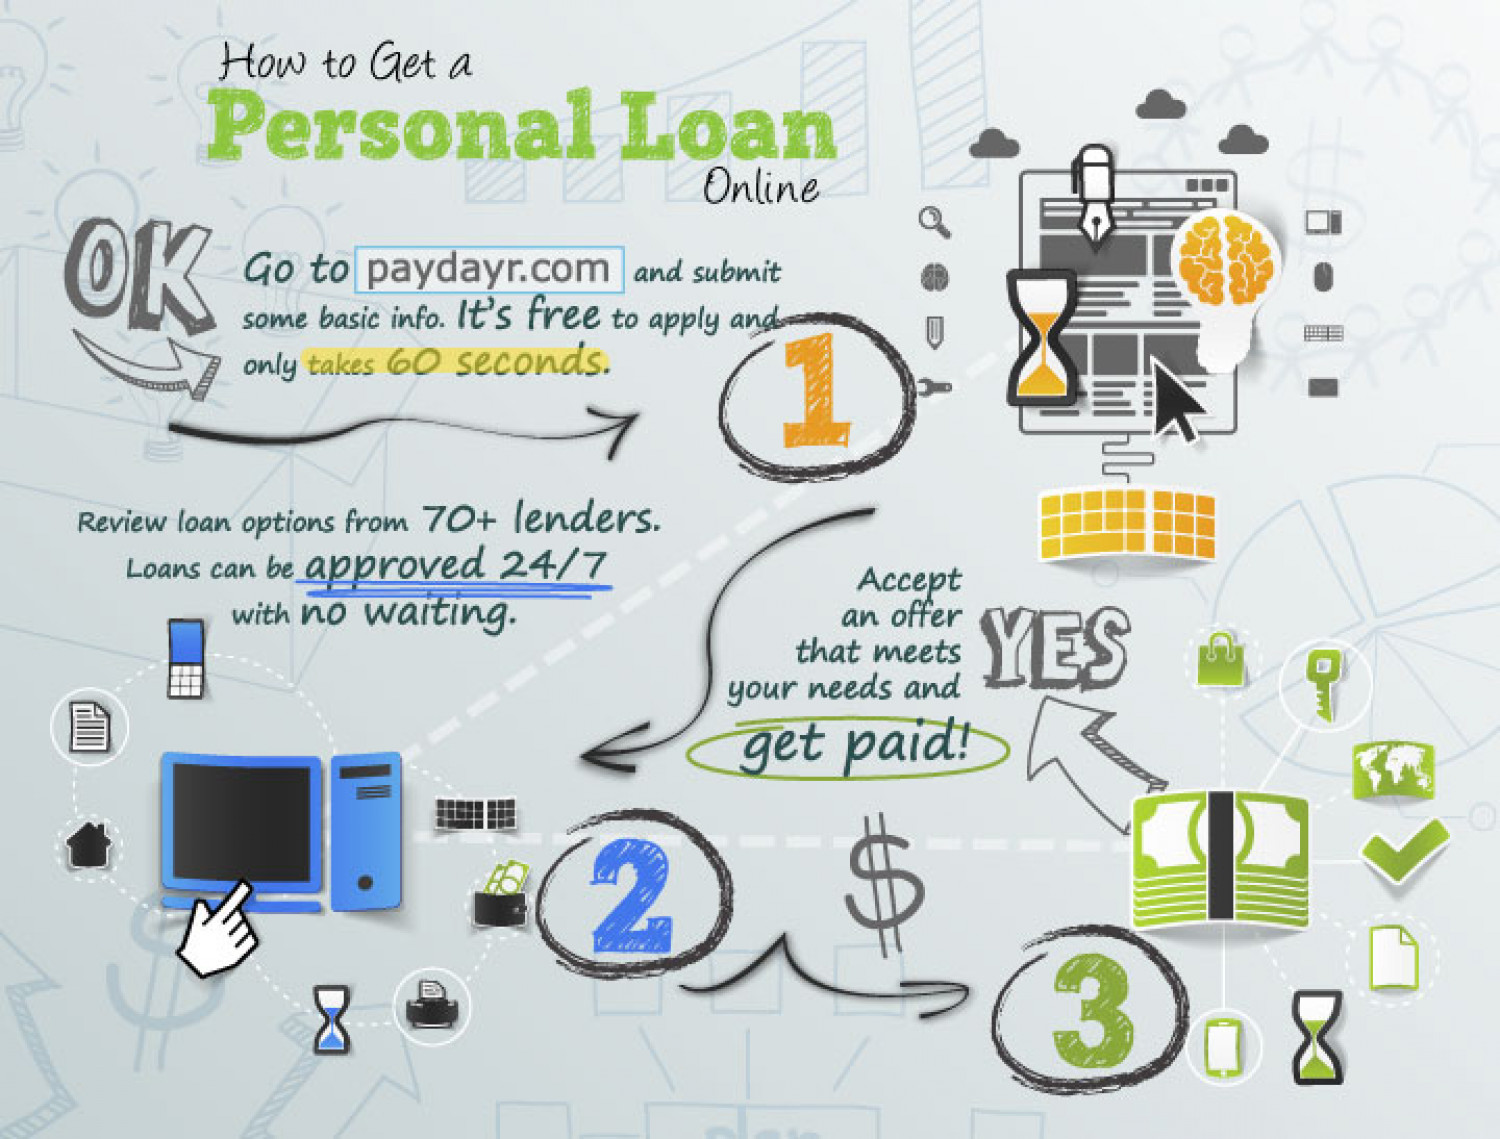 Heart payday loans picture 10